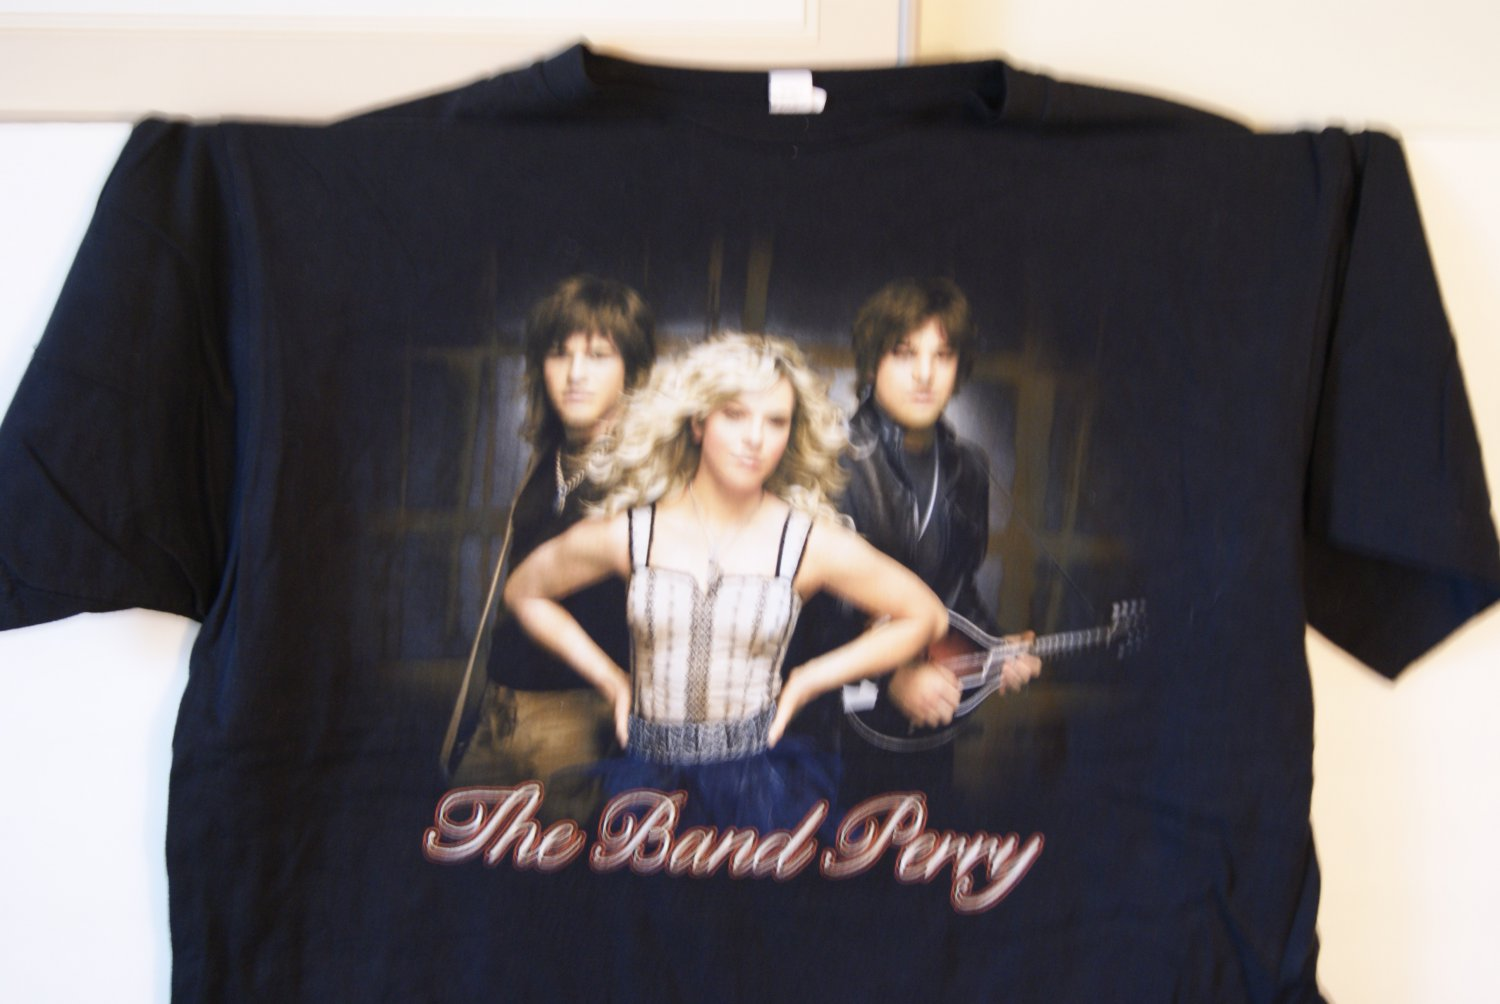 The Band Perry tee